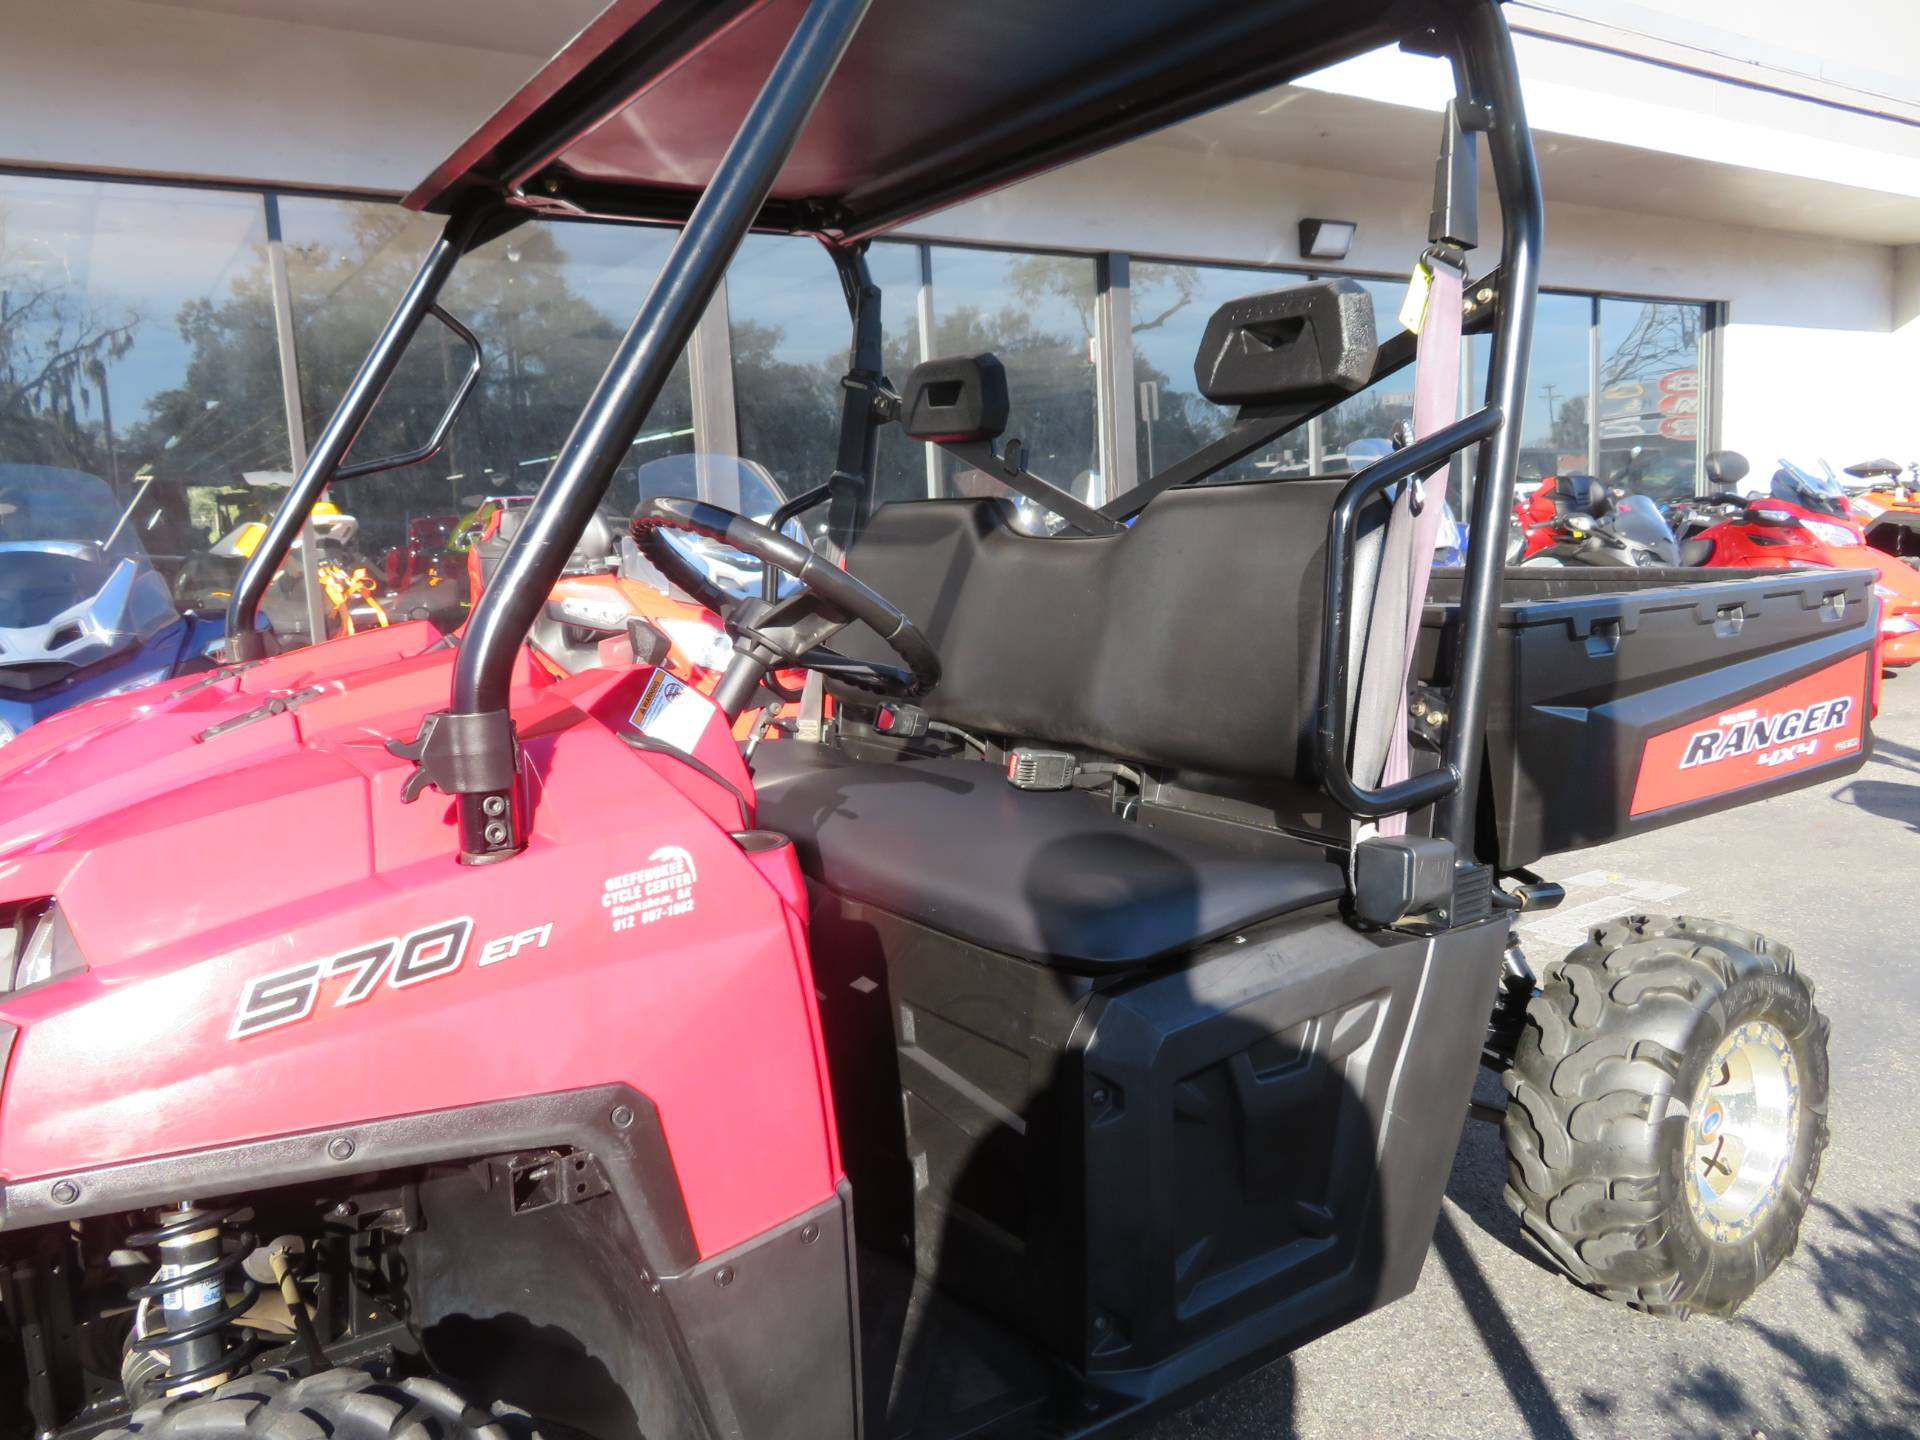 2017 Polaris Ranger 570 Full Size in Sanford, Florida - Photo 22